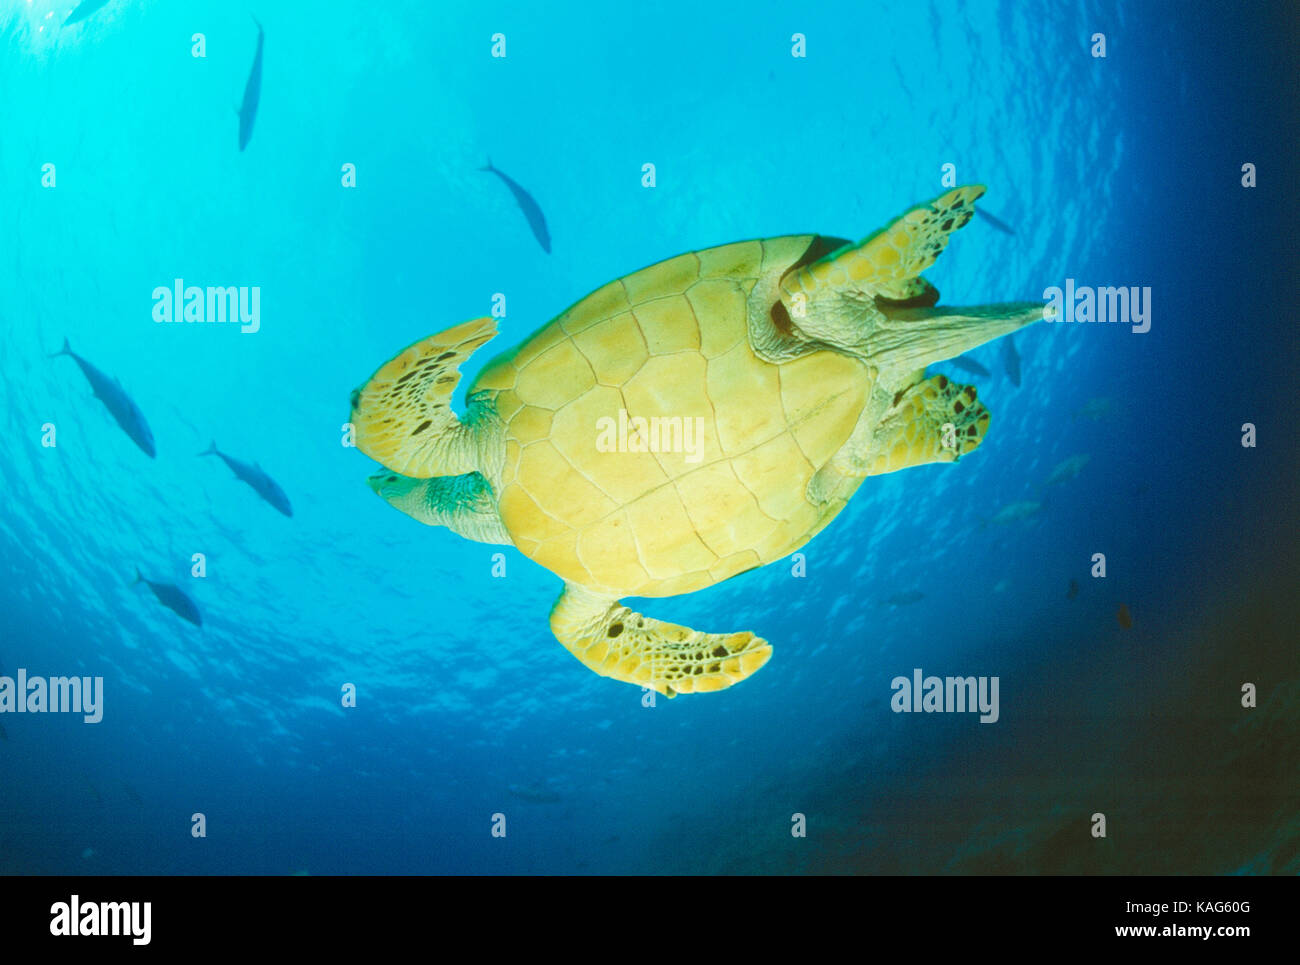 Egypt. Red Sea. View of underside of Hawksbill Turtle swimming underwater. - Stock Image